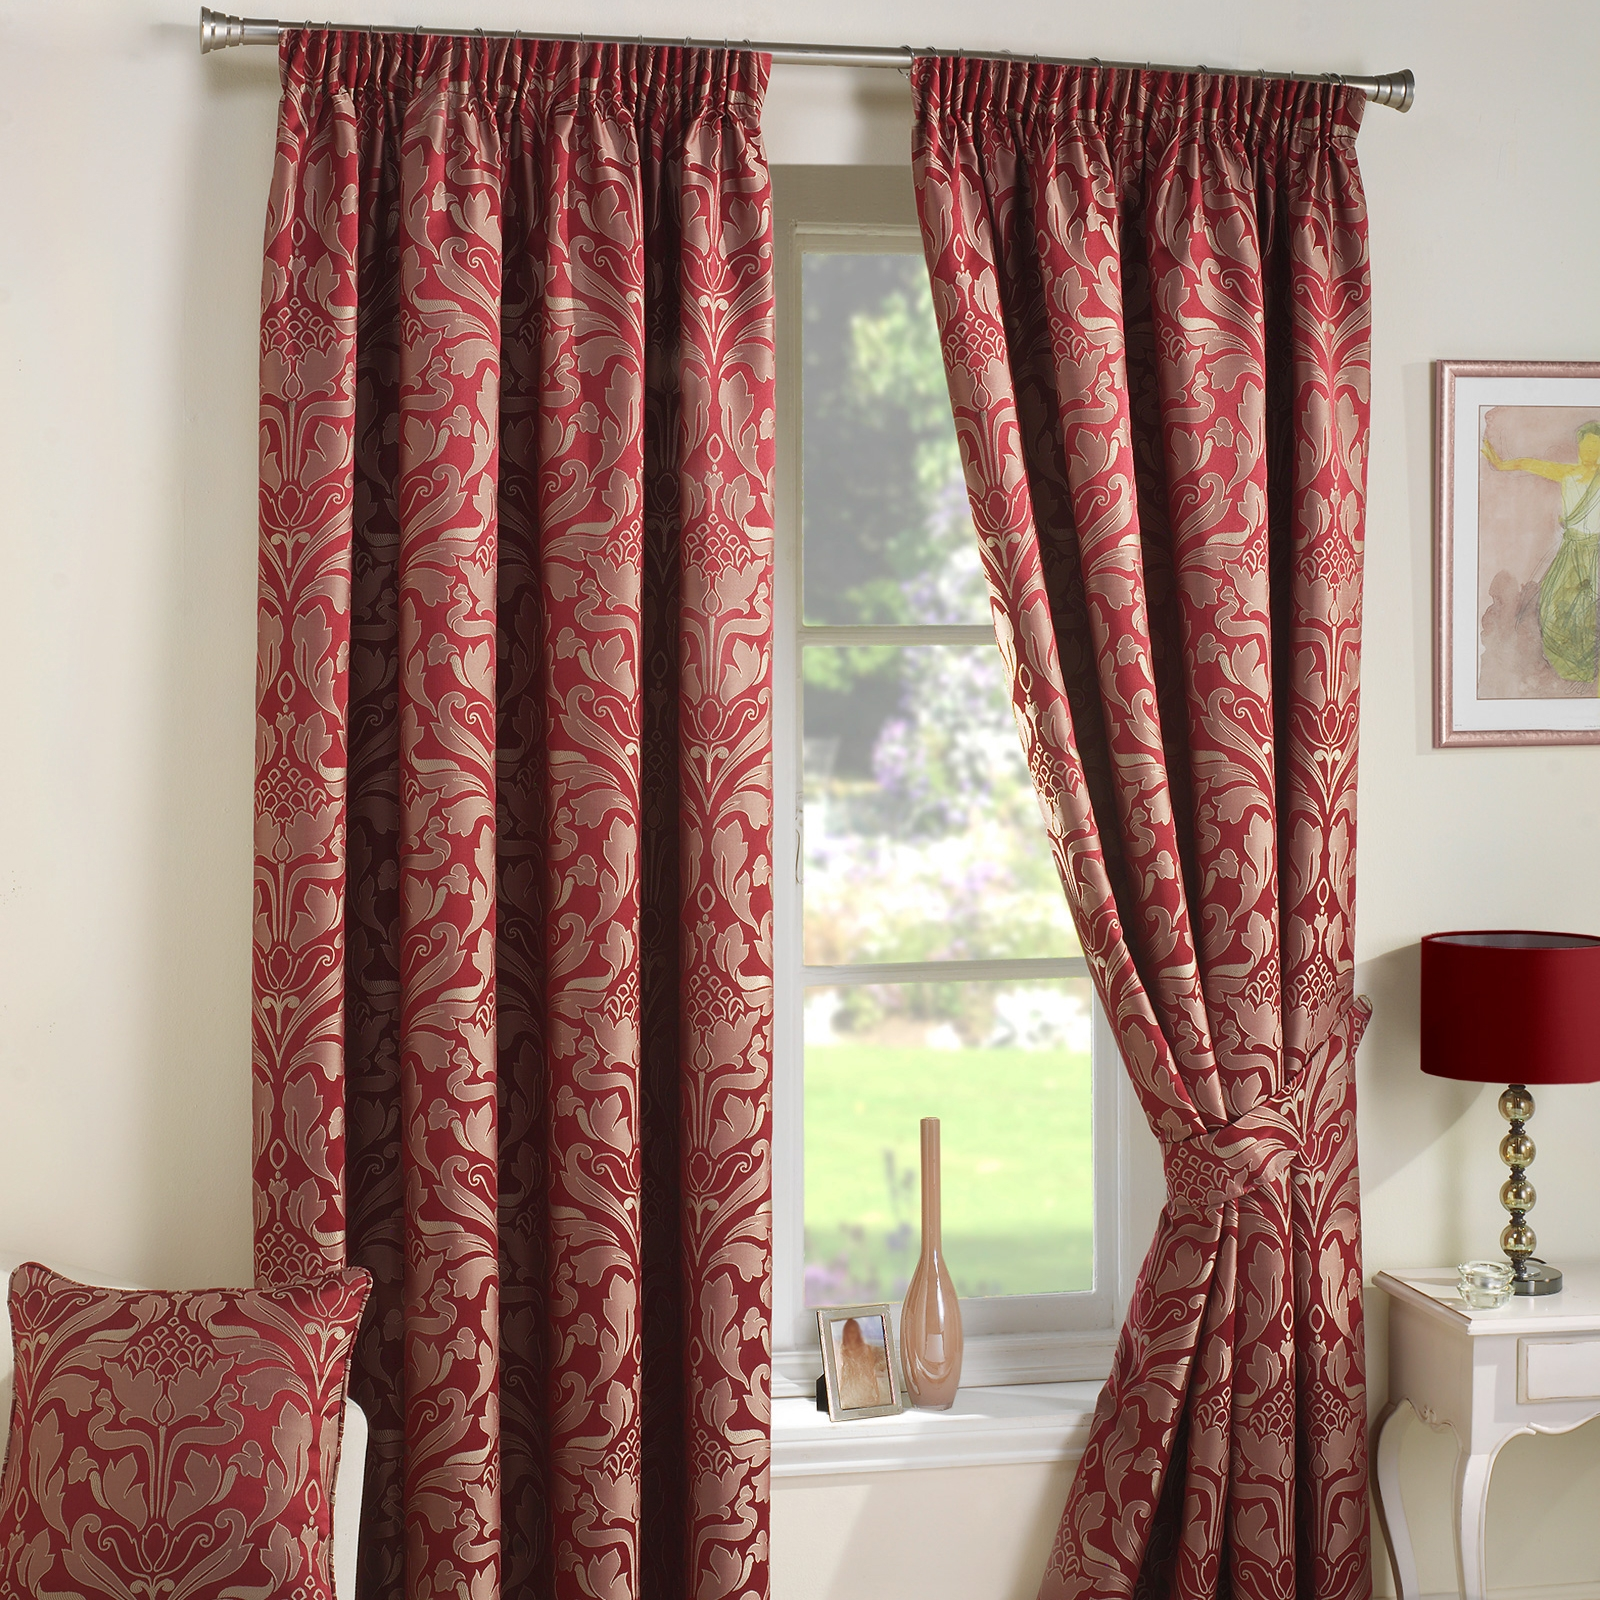 Luxury Jacquard Curtains Heavy Weight Fully Lined Pencil Pleat With Regard To Heavy Lined Curtains (Image 9 of 15)